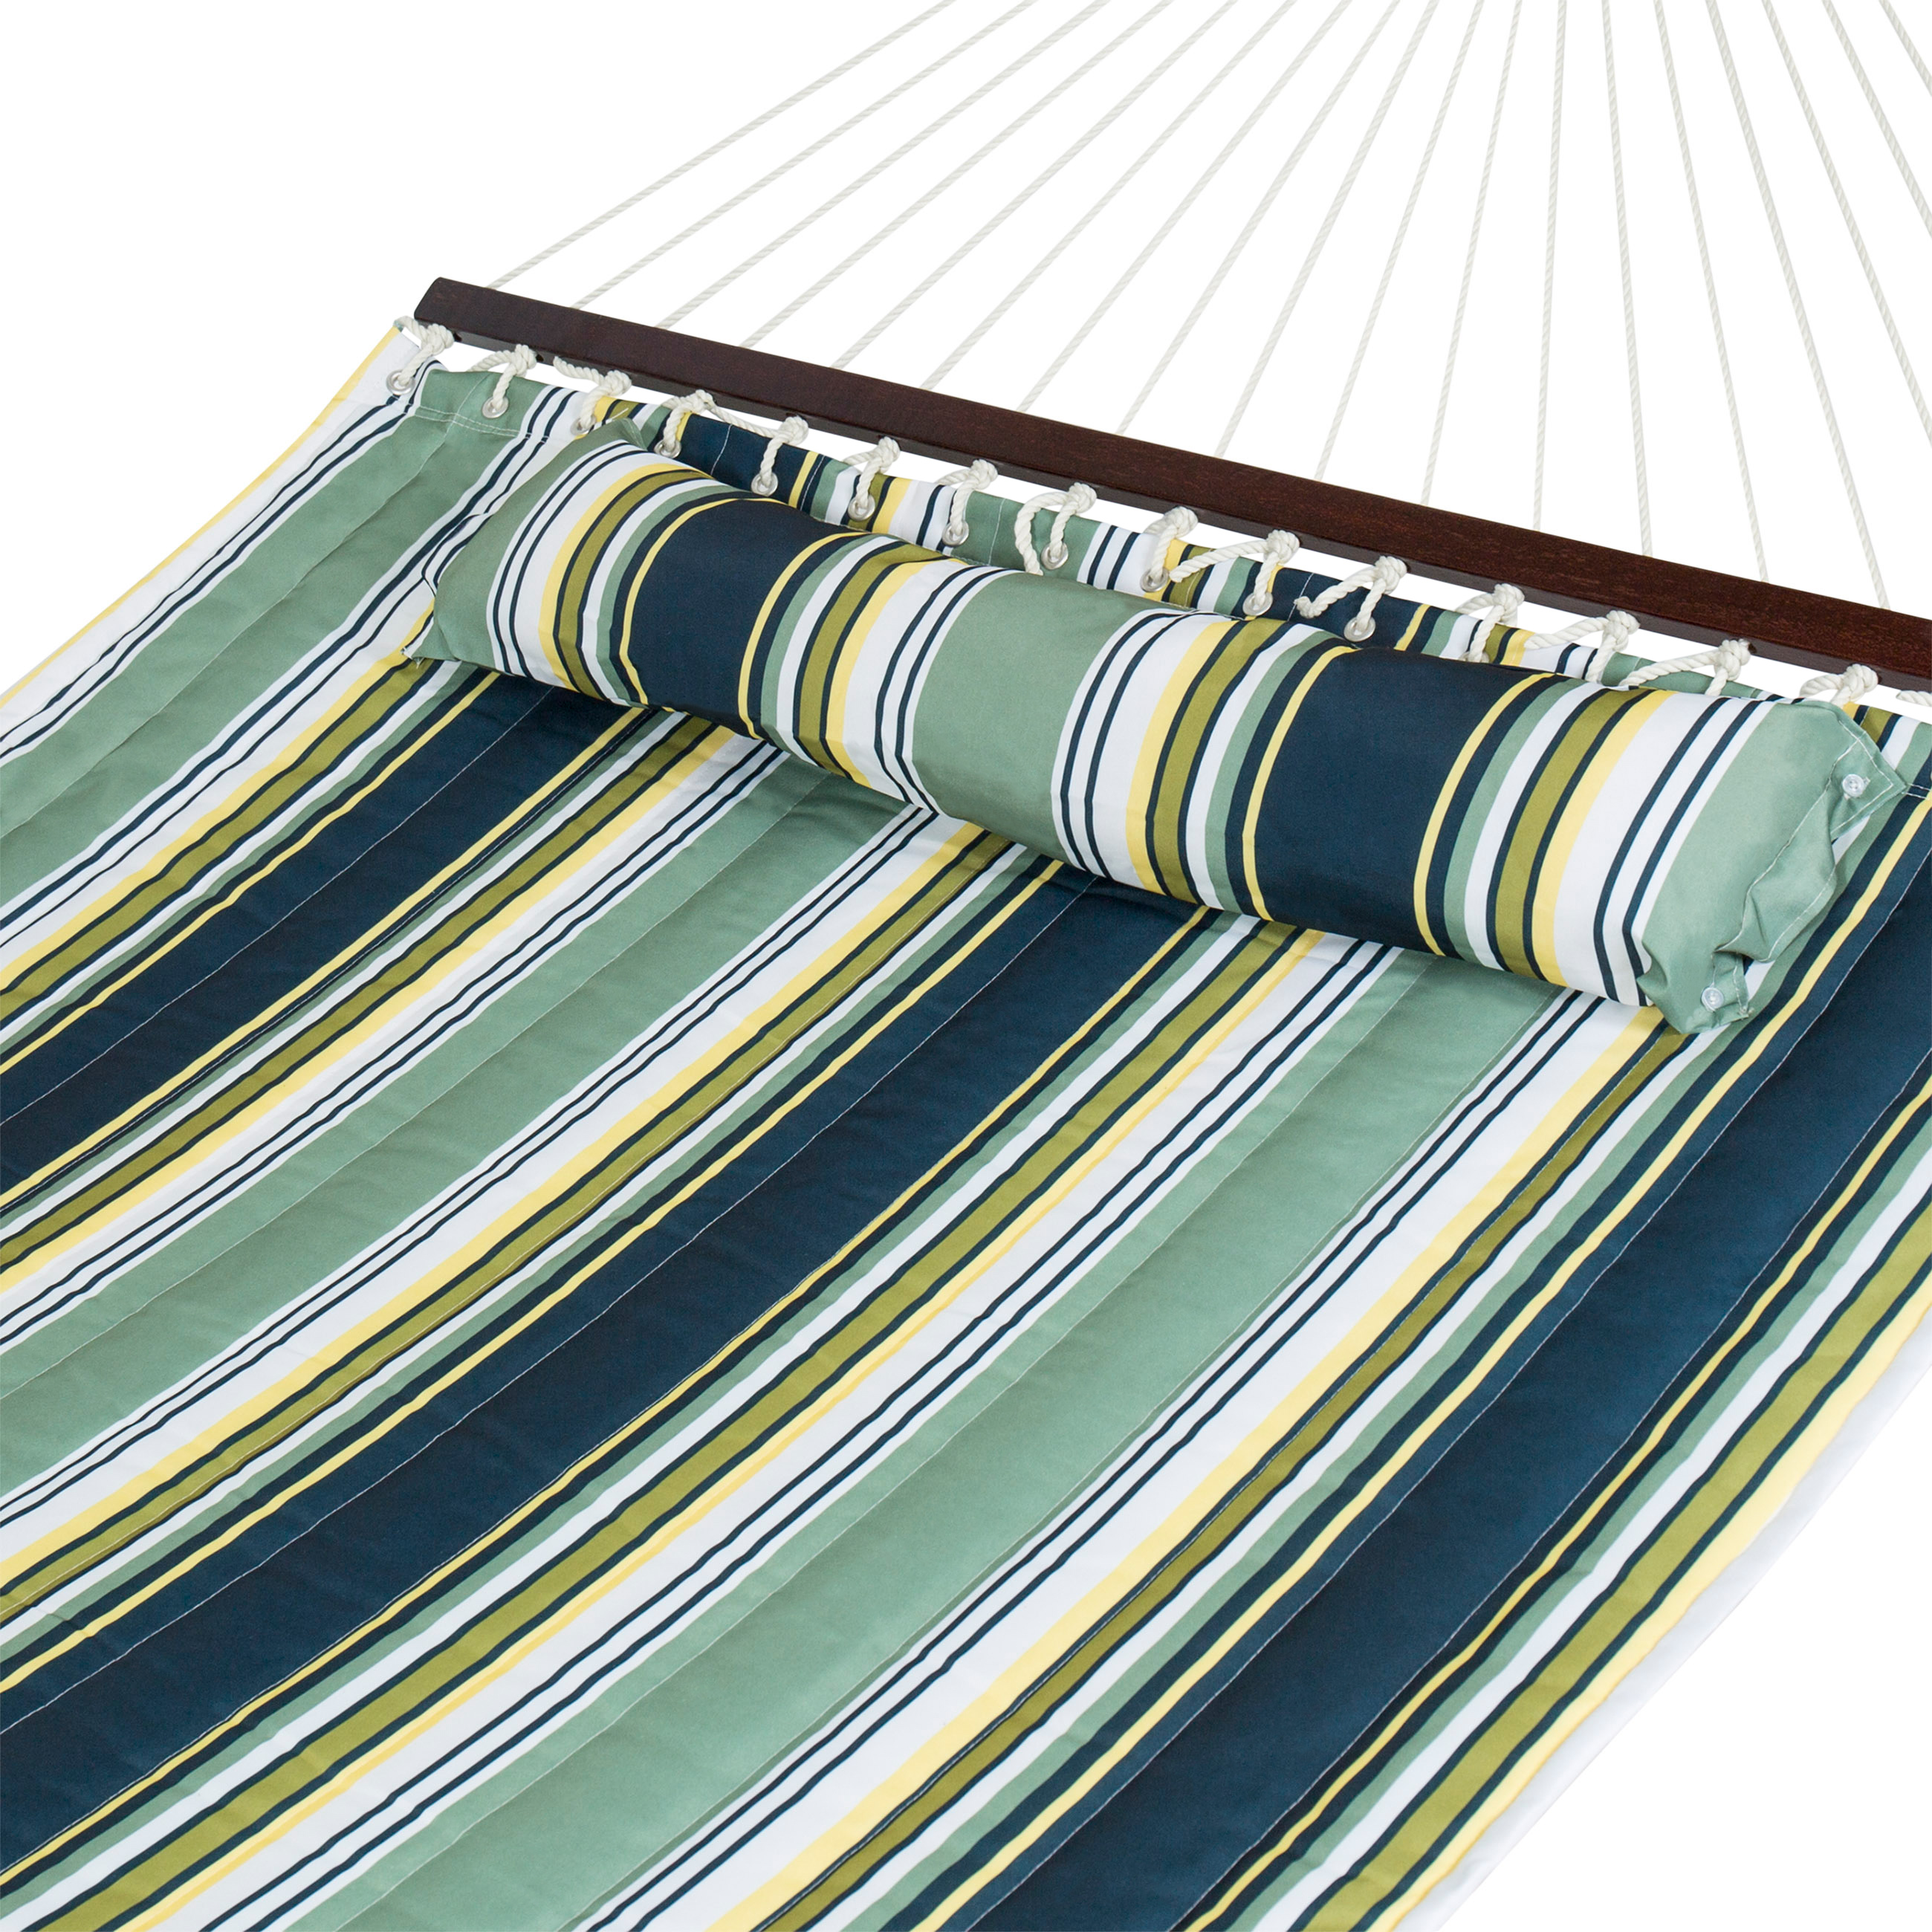 Best Choice Products Quilted Double Hammock w/ Detachable Pillow, Spreader Bar